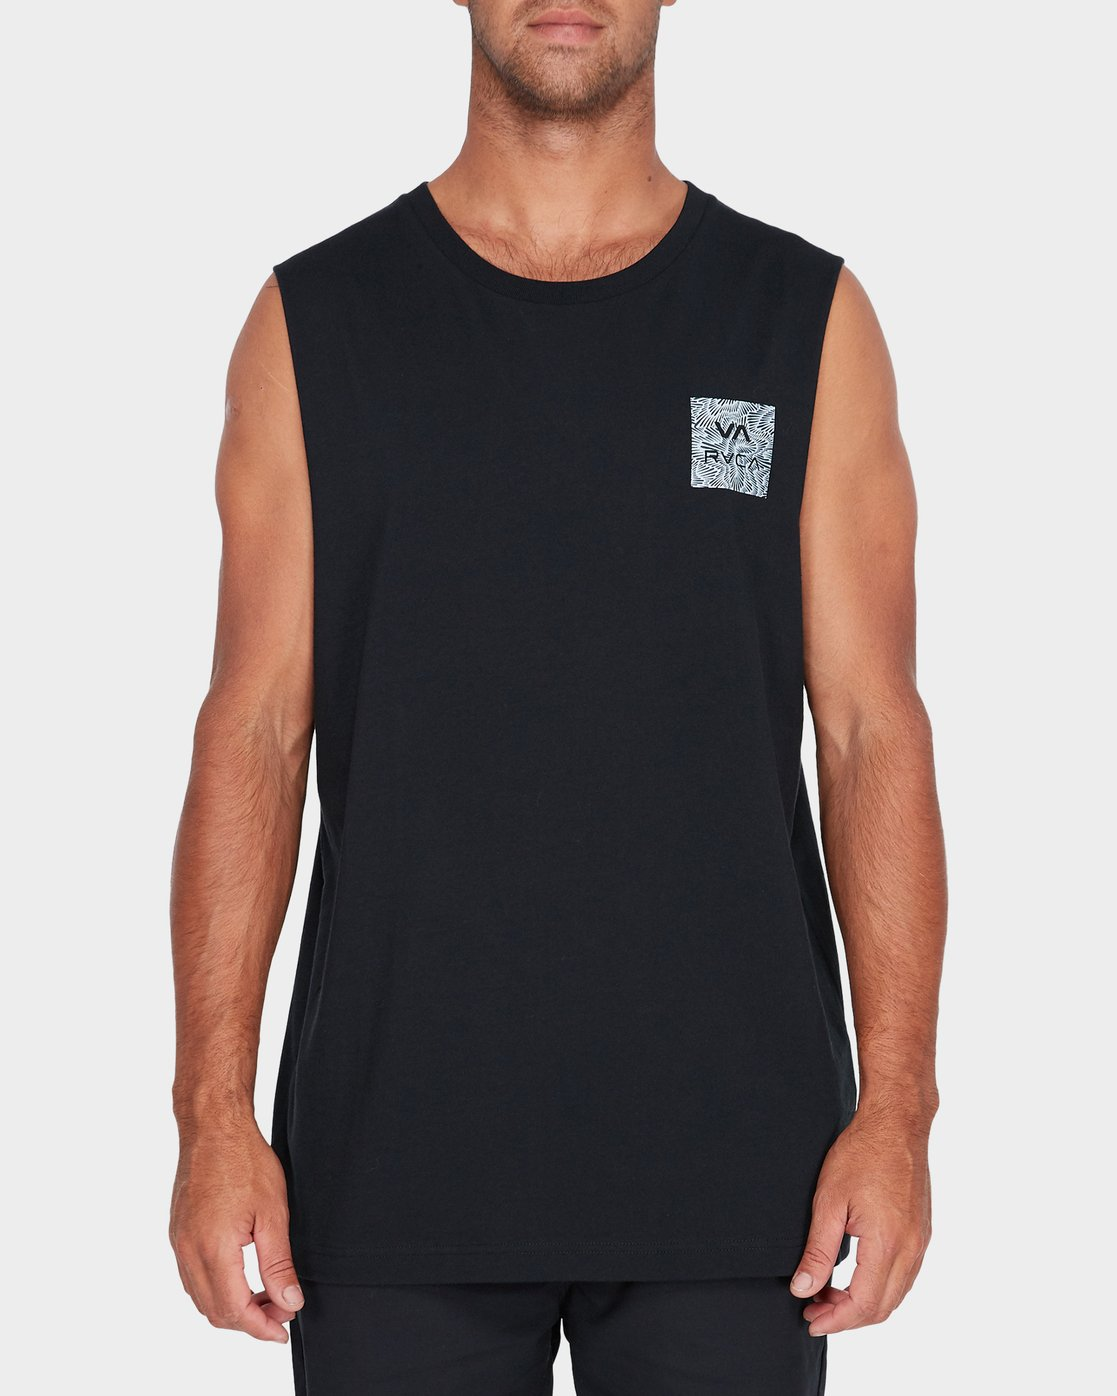 0 Va All The Ways Multi Muscle Black R182010 RVCA